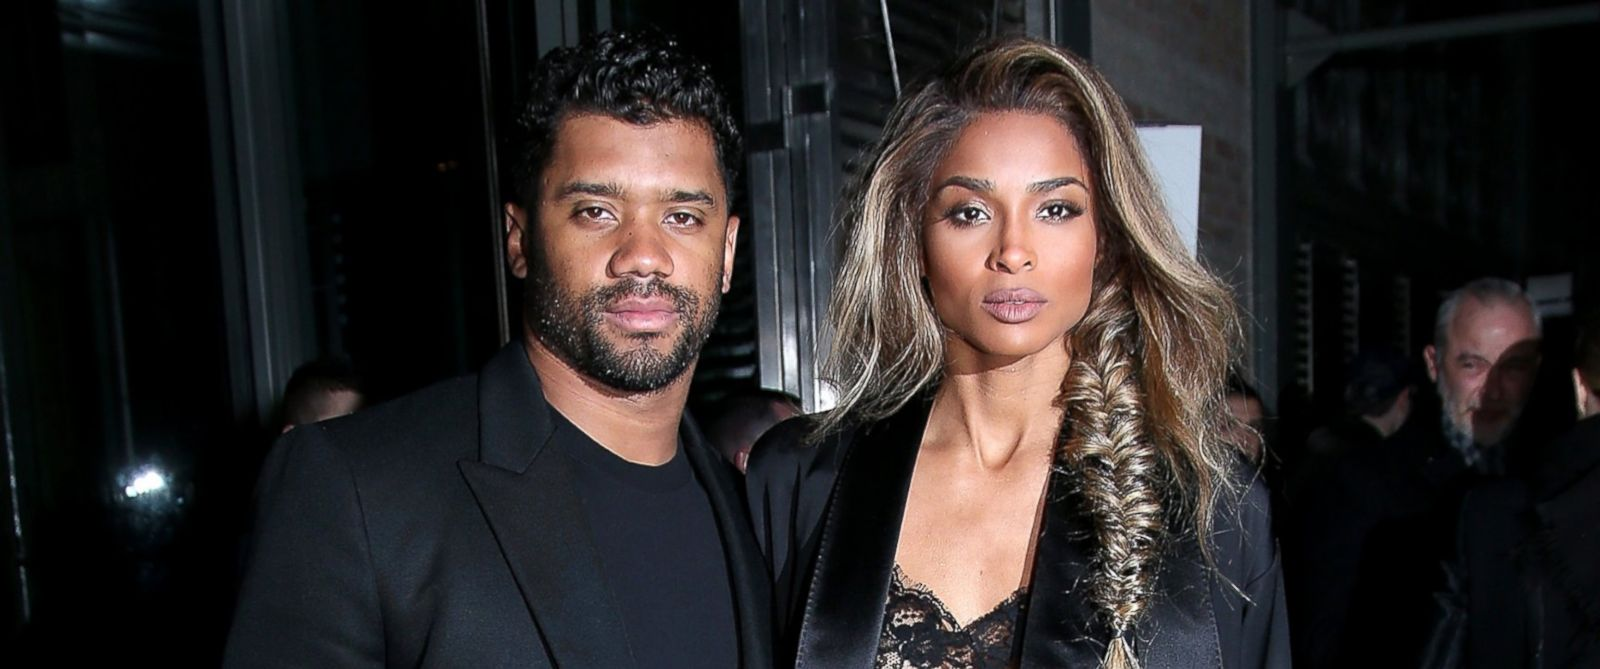 PHOTO: Russell Wilson and Ciara arrive at the Givenchy show as part of the Paris Fashion Week, March 6, 2016 in Paris, France.